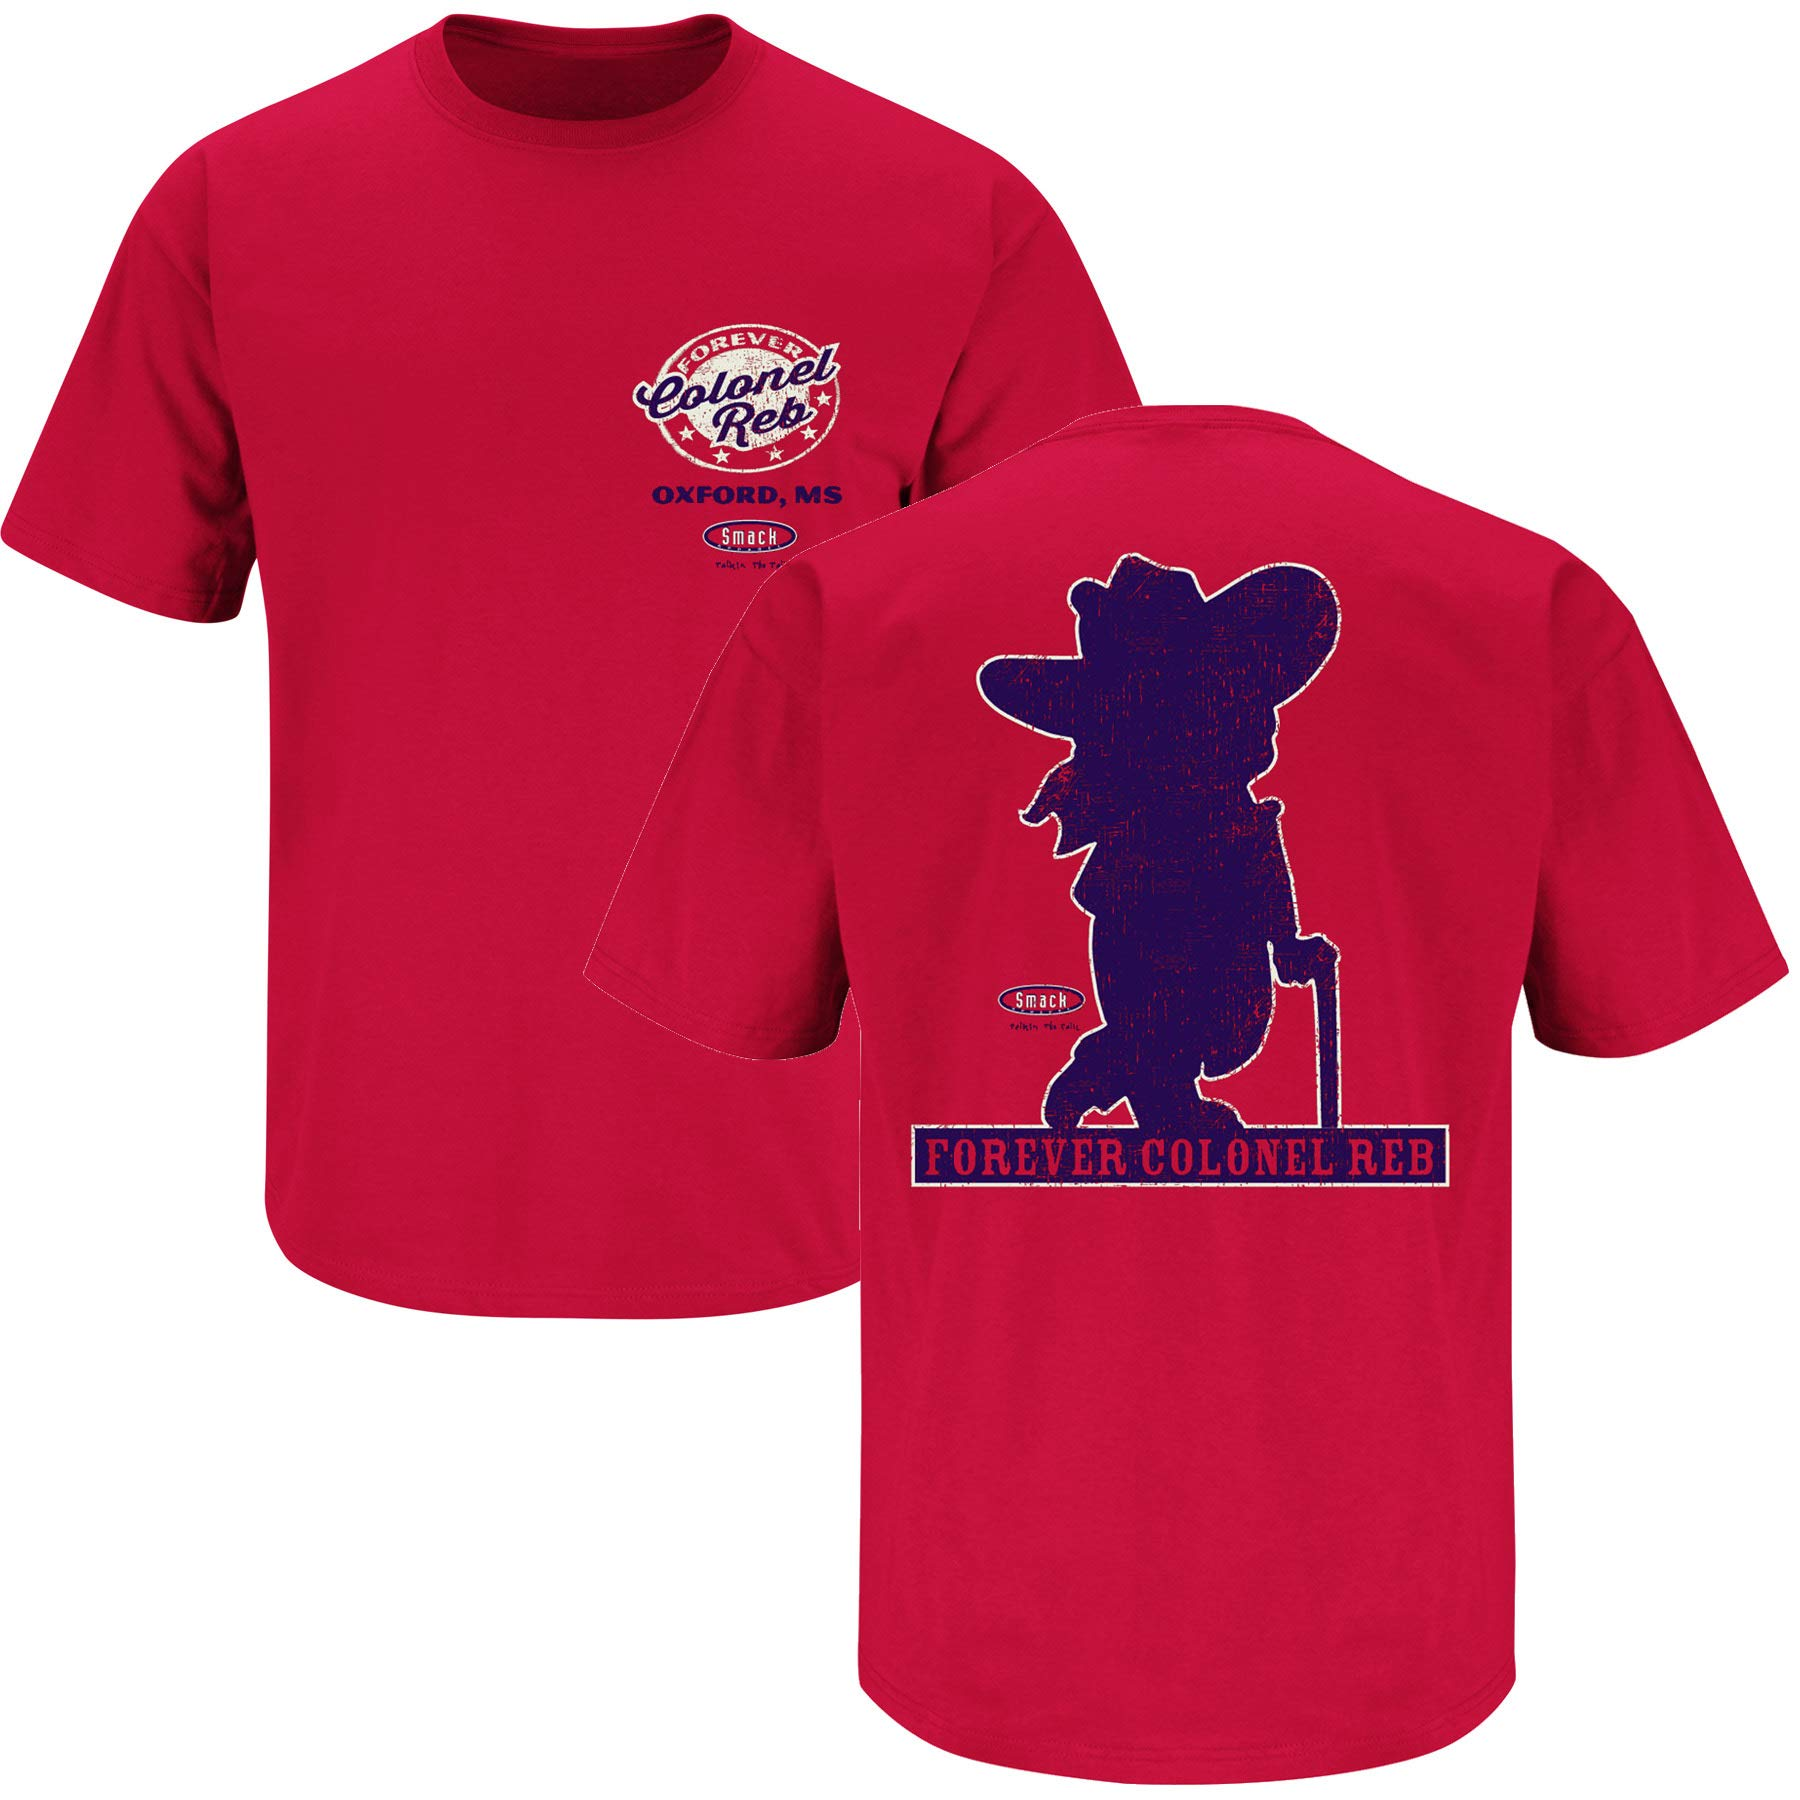 Smack Apparel Ole Miss Football Fans. Colonel Reb. Red T-Shirt (Sm-5X)